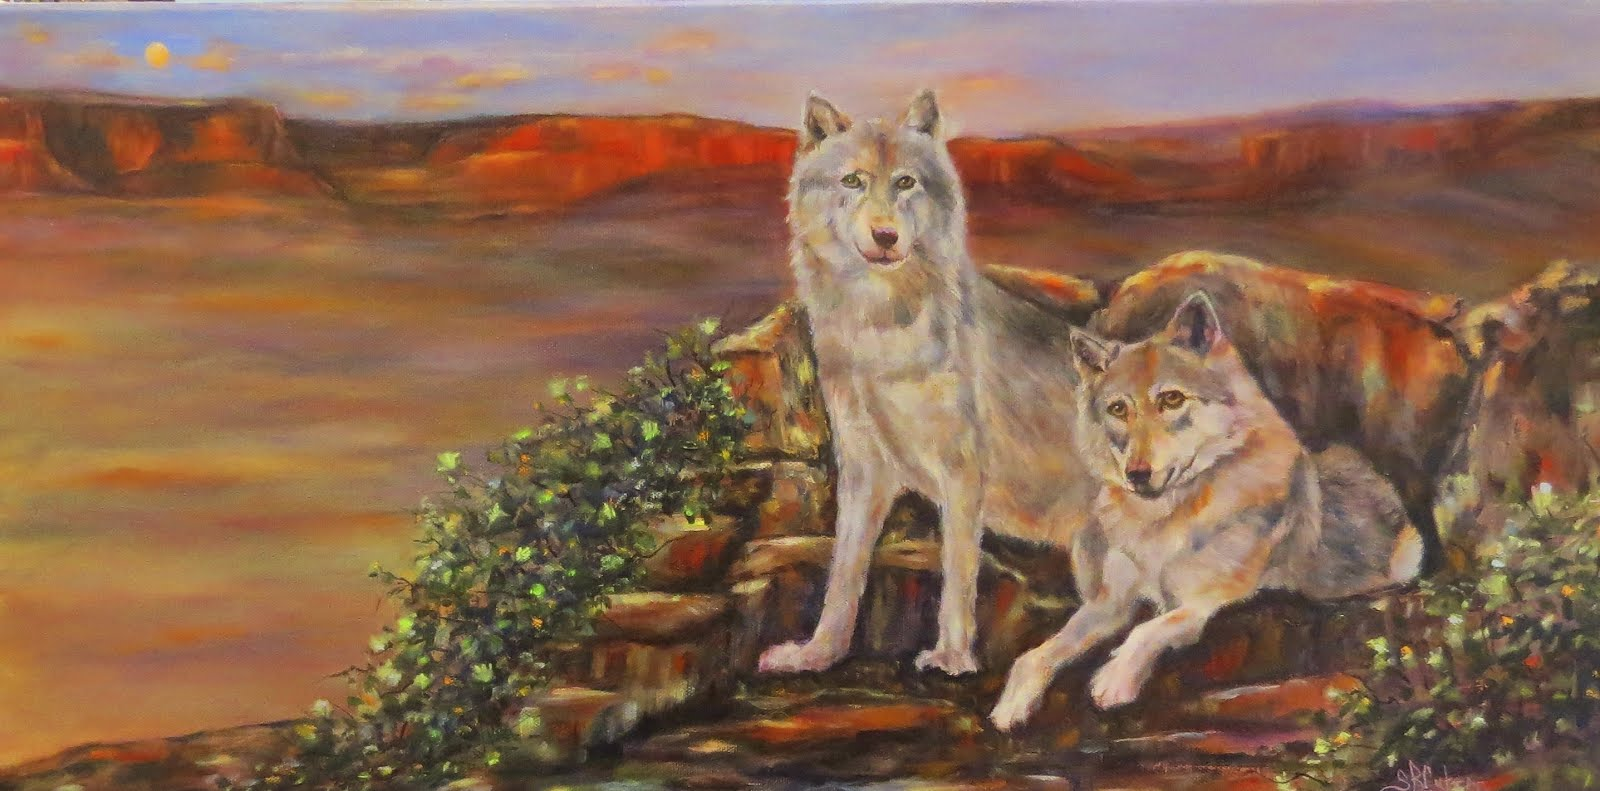 Two Wolves and a Sunset